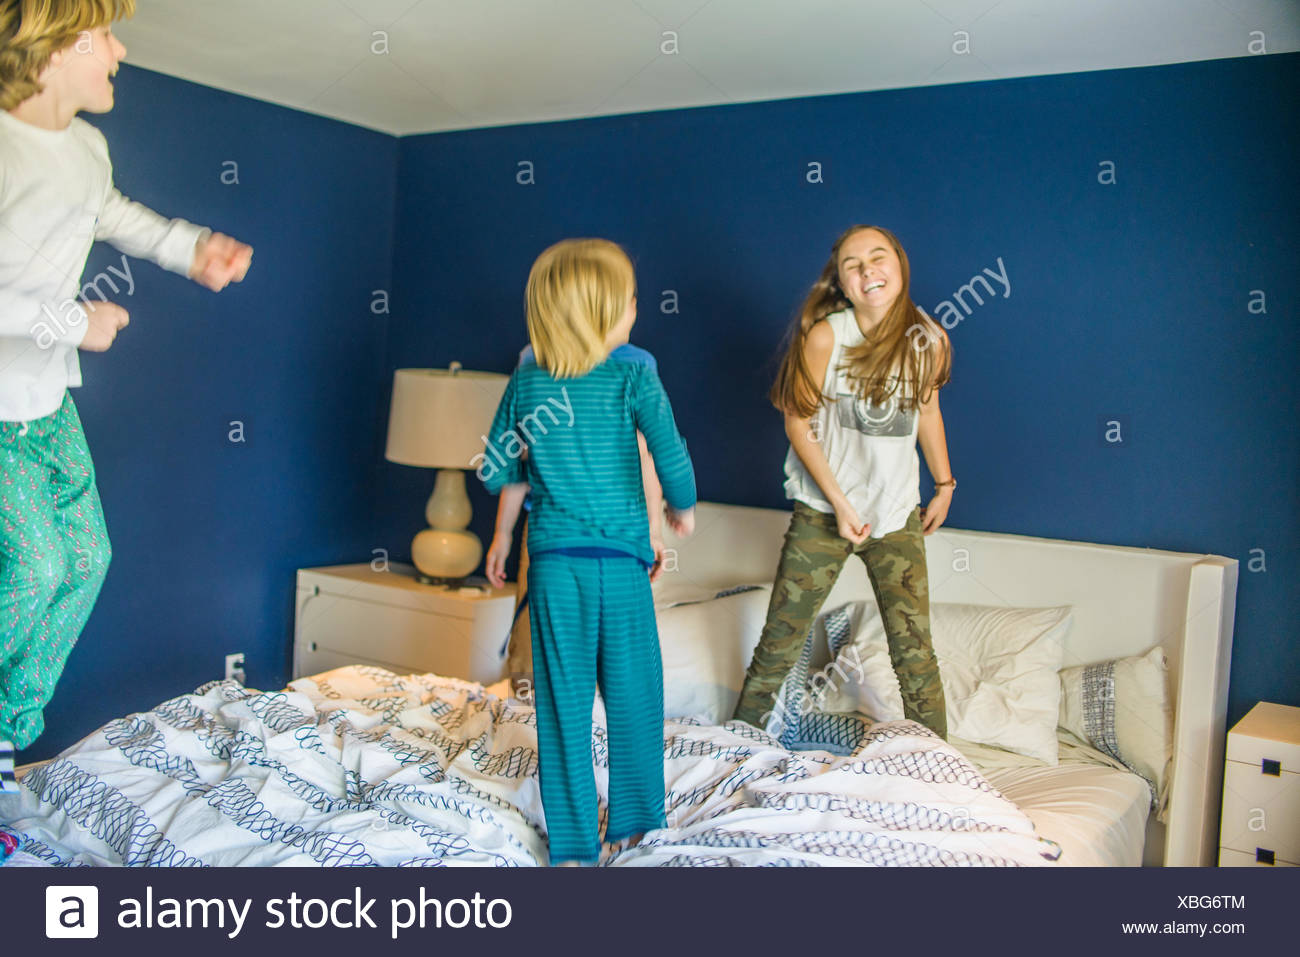 Teenage girl jumping on bed with younger brothers Stock Photo